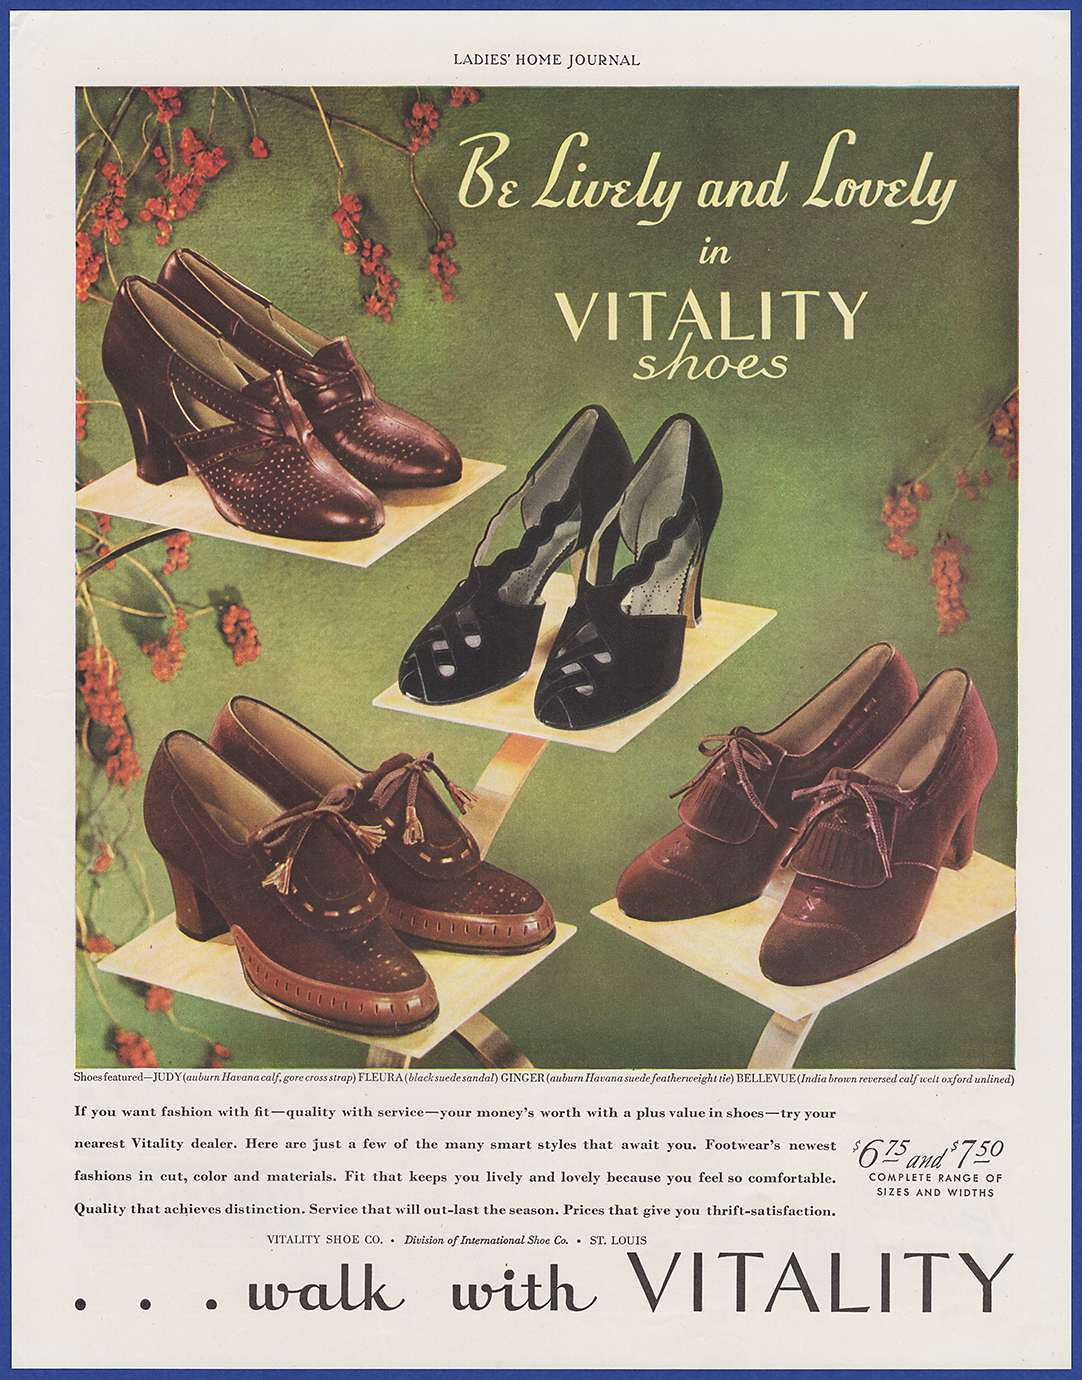 Details about Vintage 1938 VITALITY Shoes Women's Fashion Judy Fleura  Ginger Print Ad 1930's